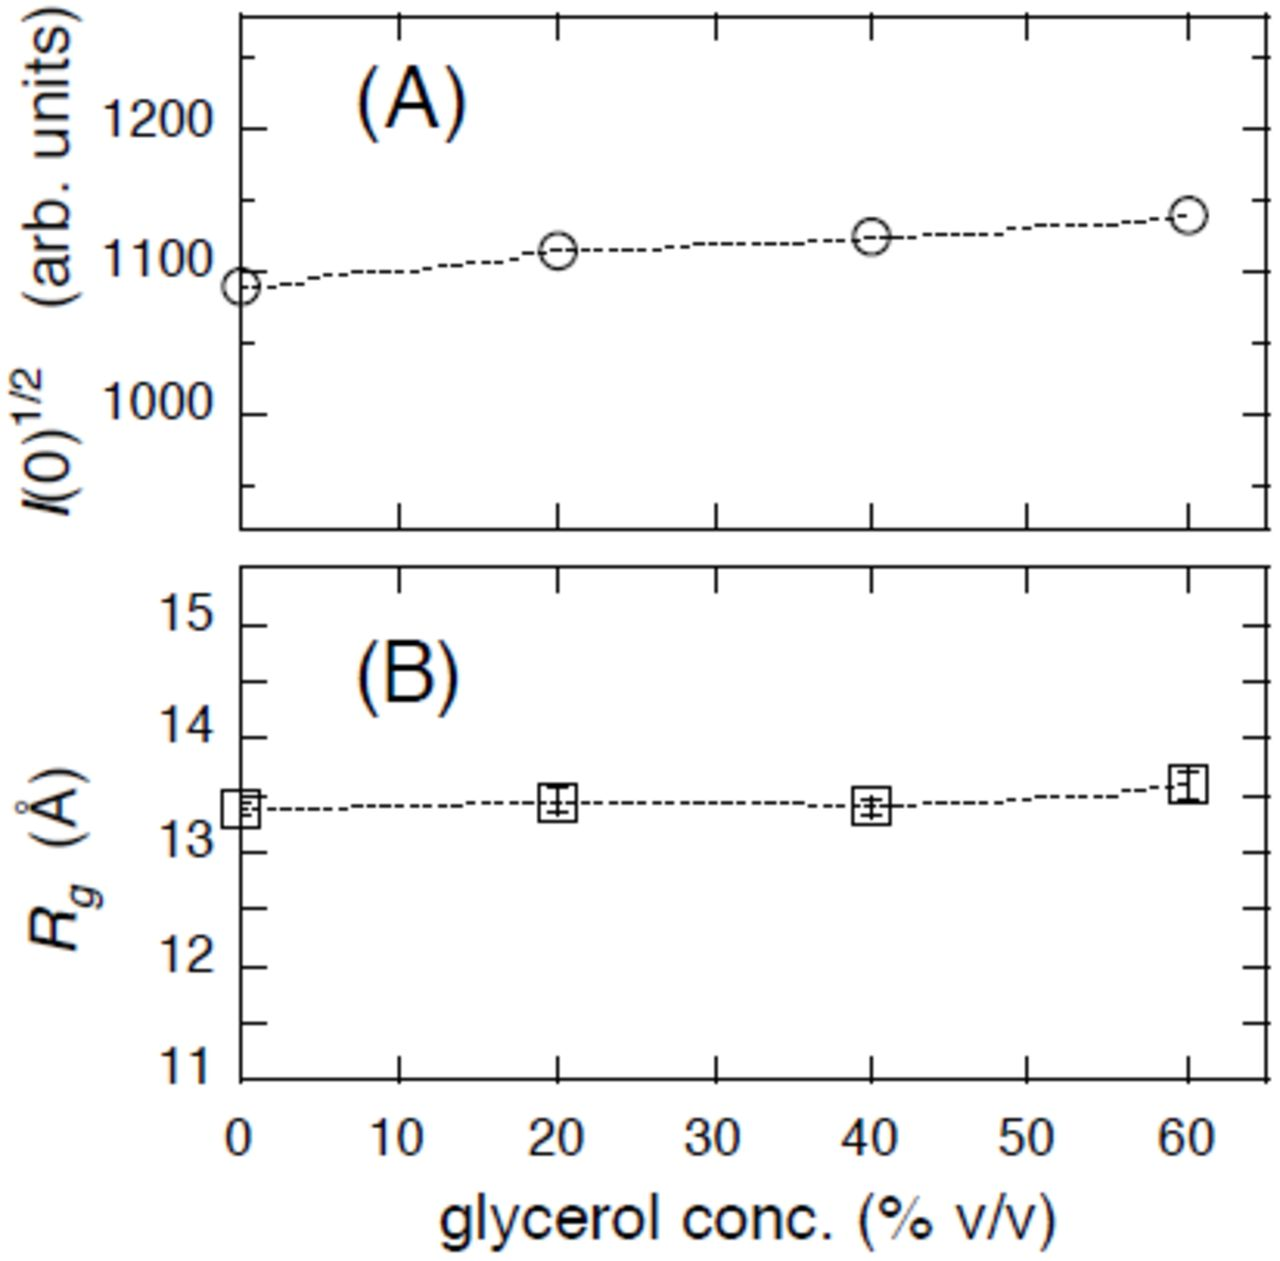 Direct Evidence of Effect of Glycerol on Hydration and Helix